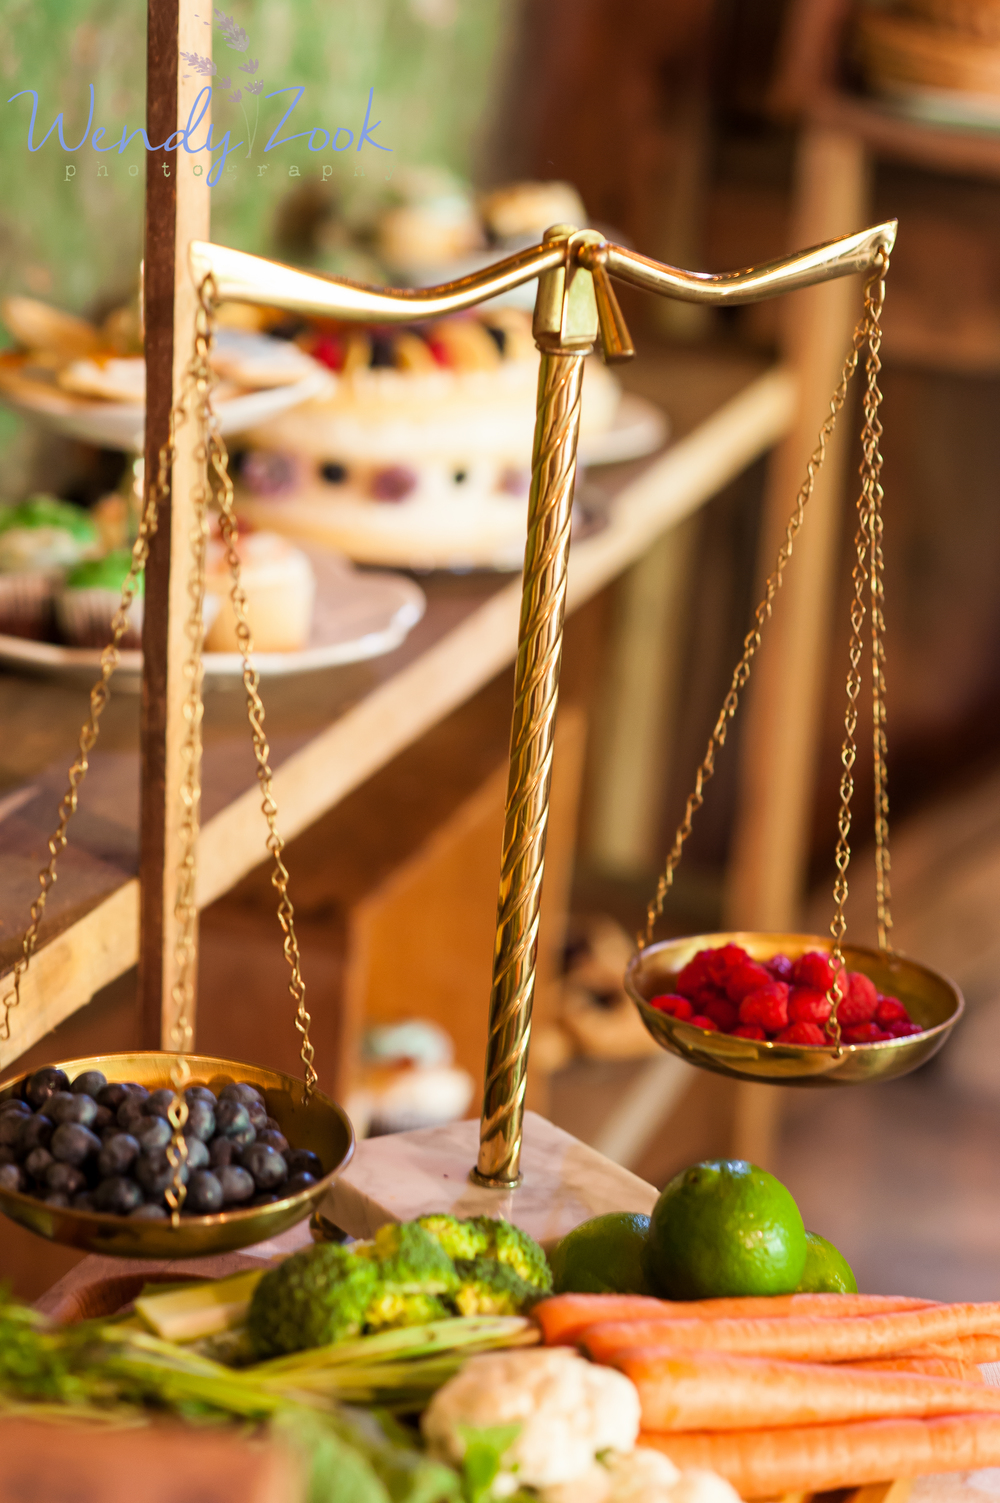 fruit-on-scales.jpg